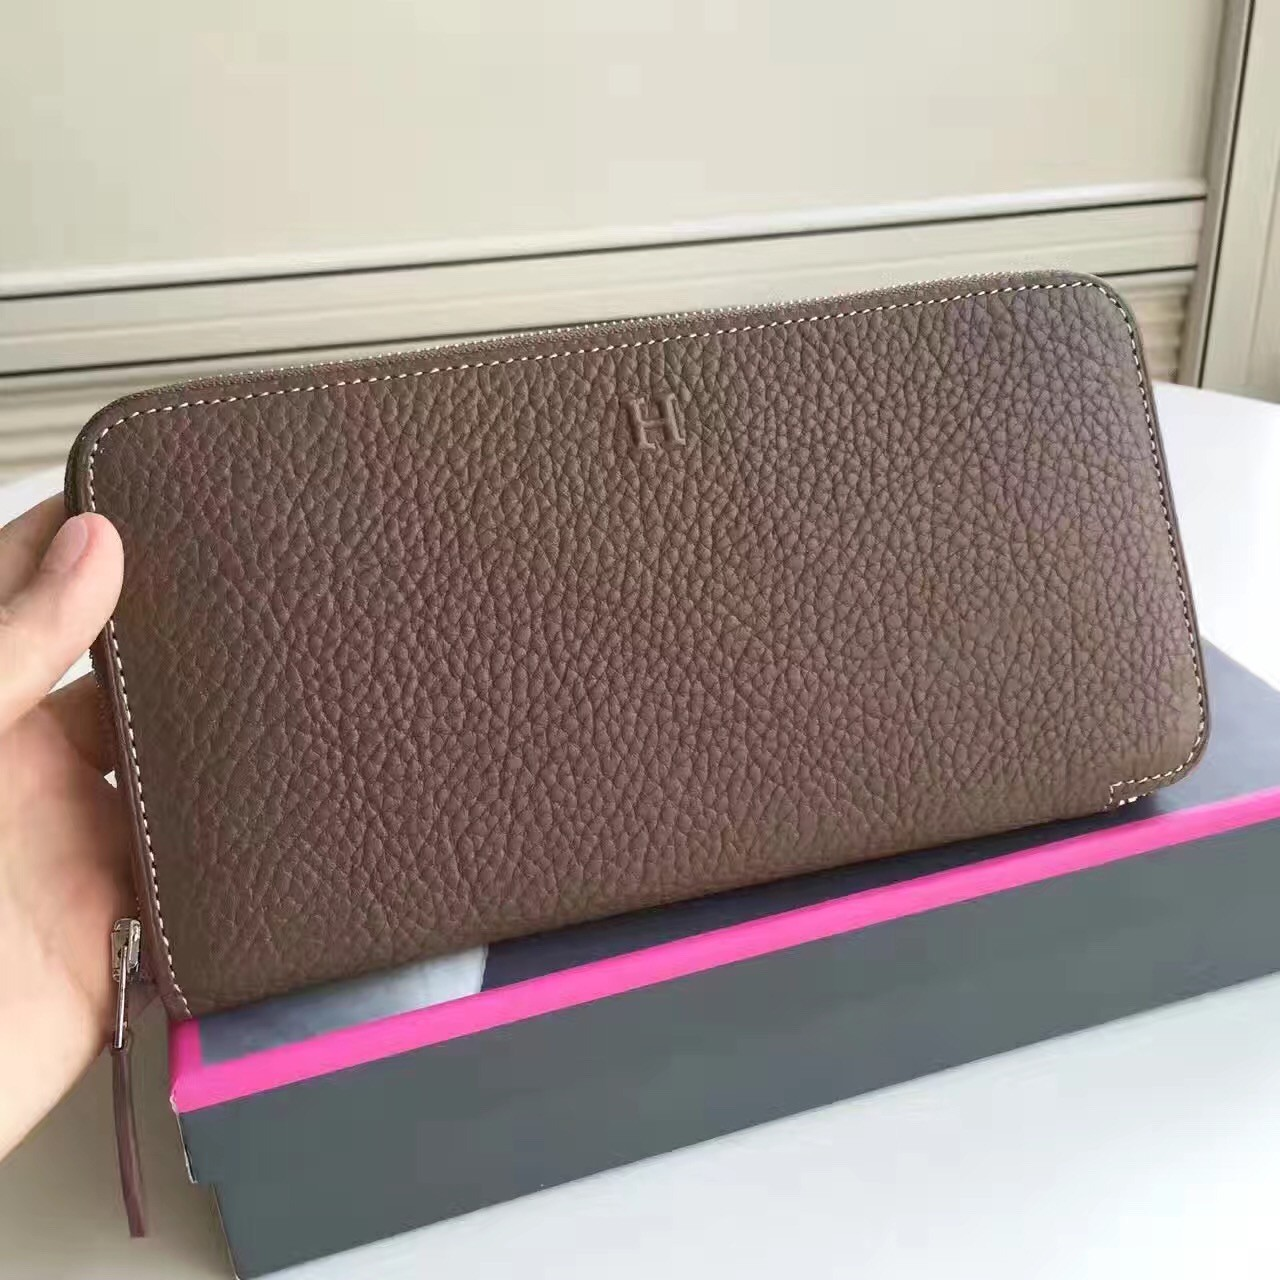 Knockoff Hermes Etoupe Clemence Azap Zipped Wallet